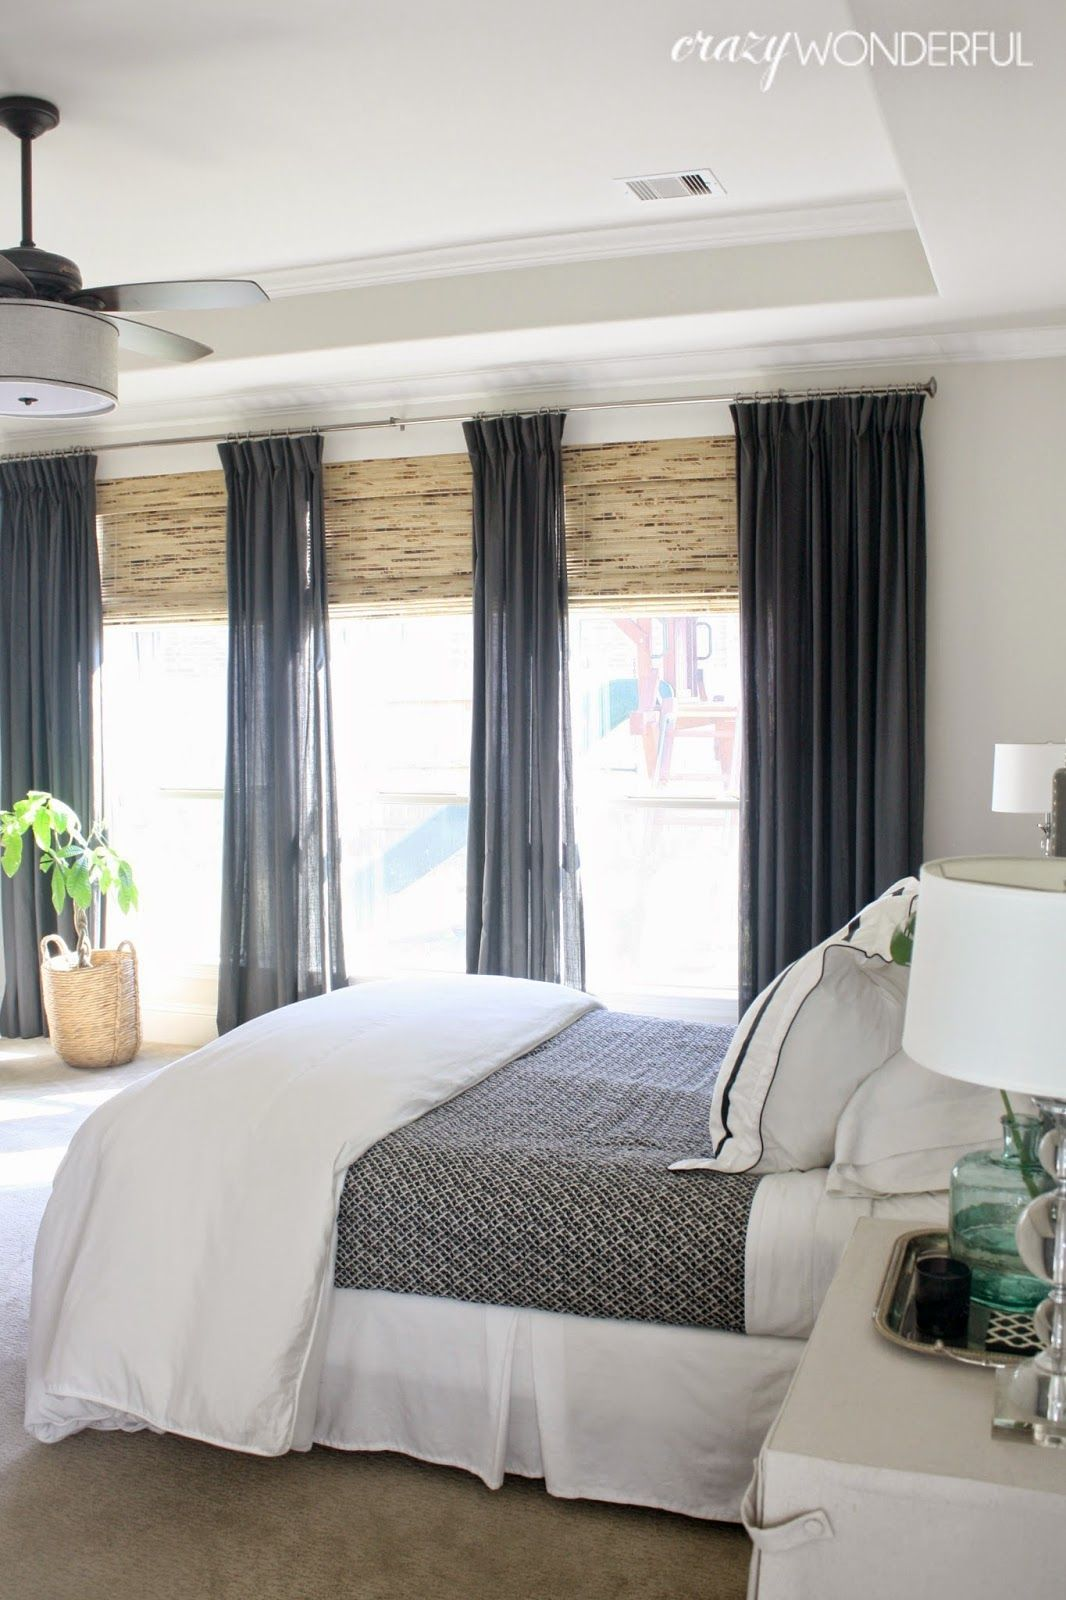 Our master bedroom is one of my favorite spots in our house. It ...